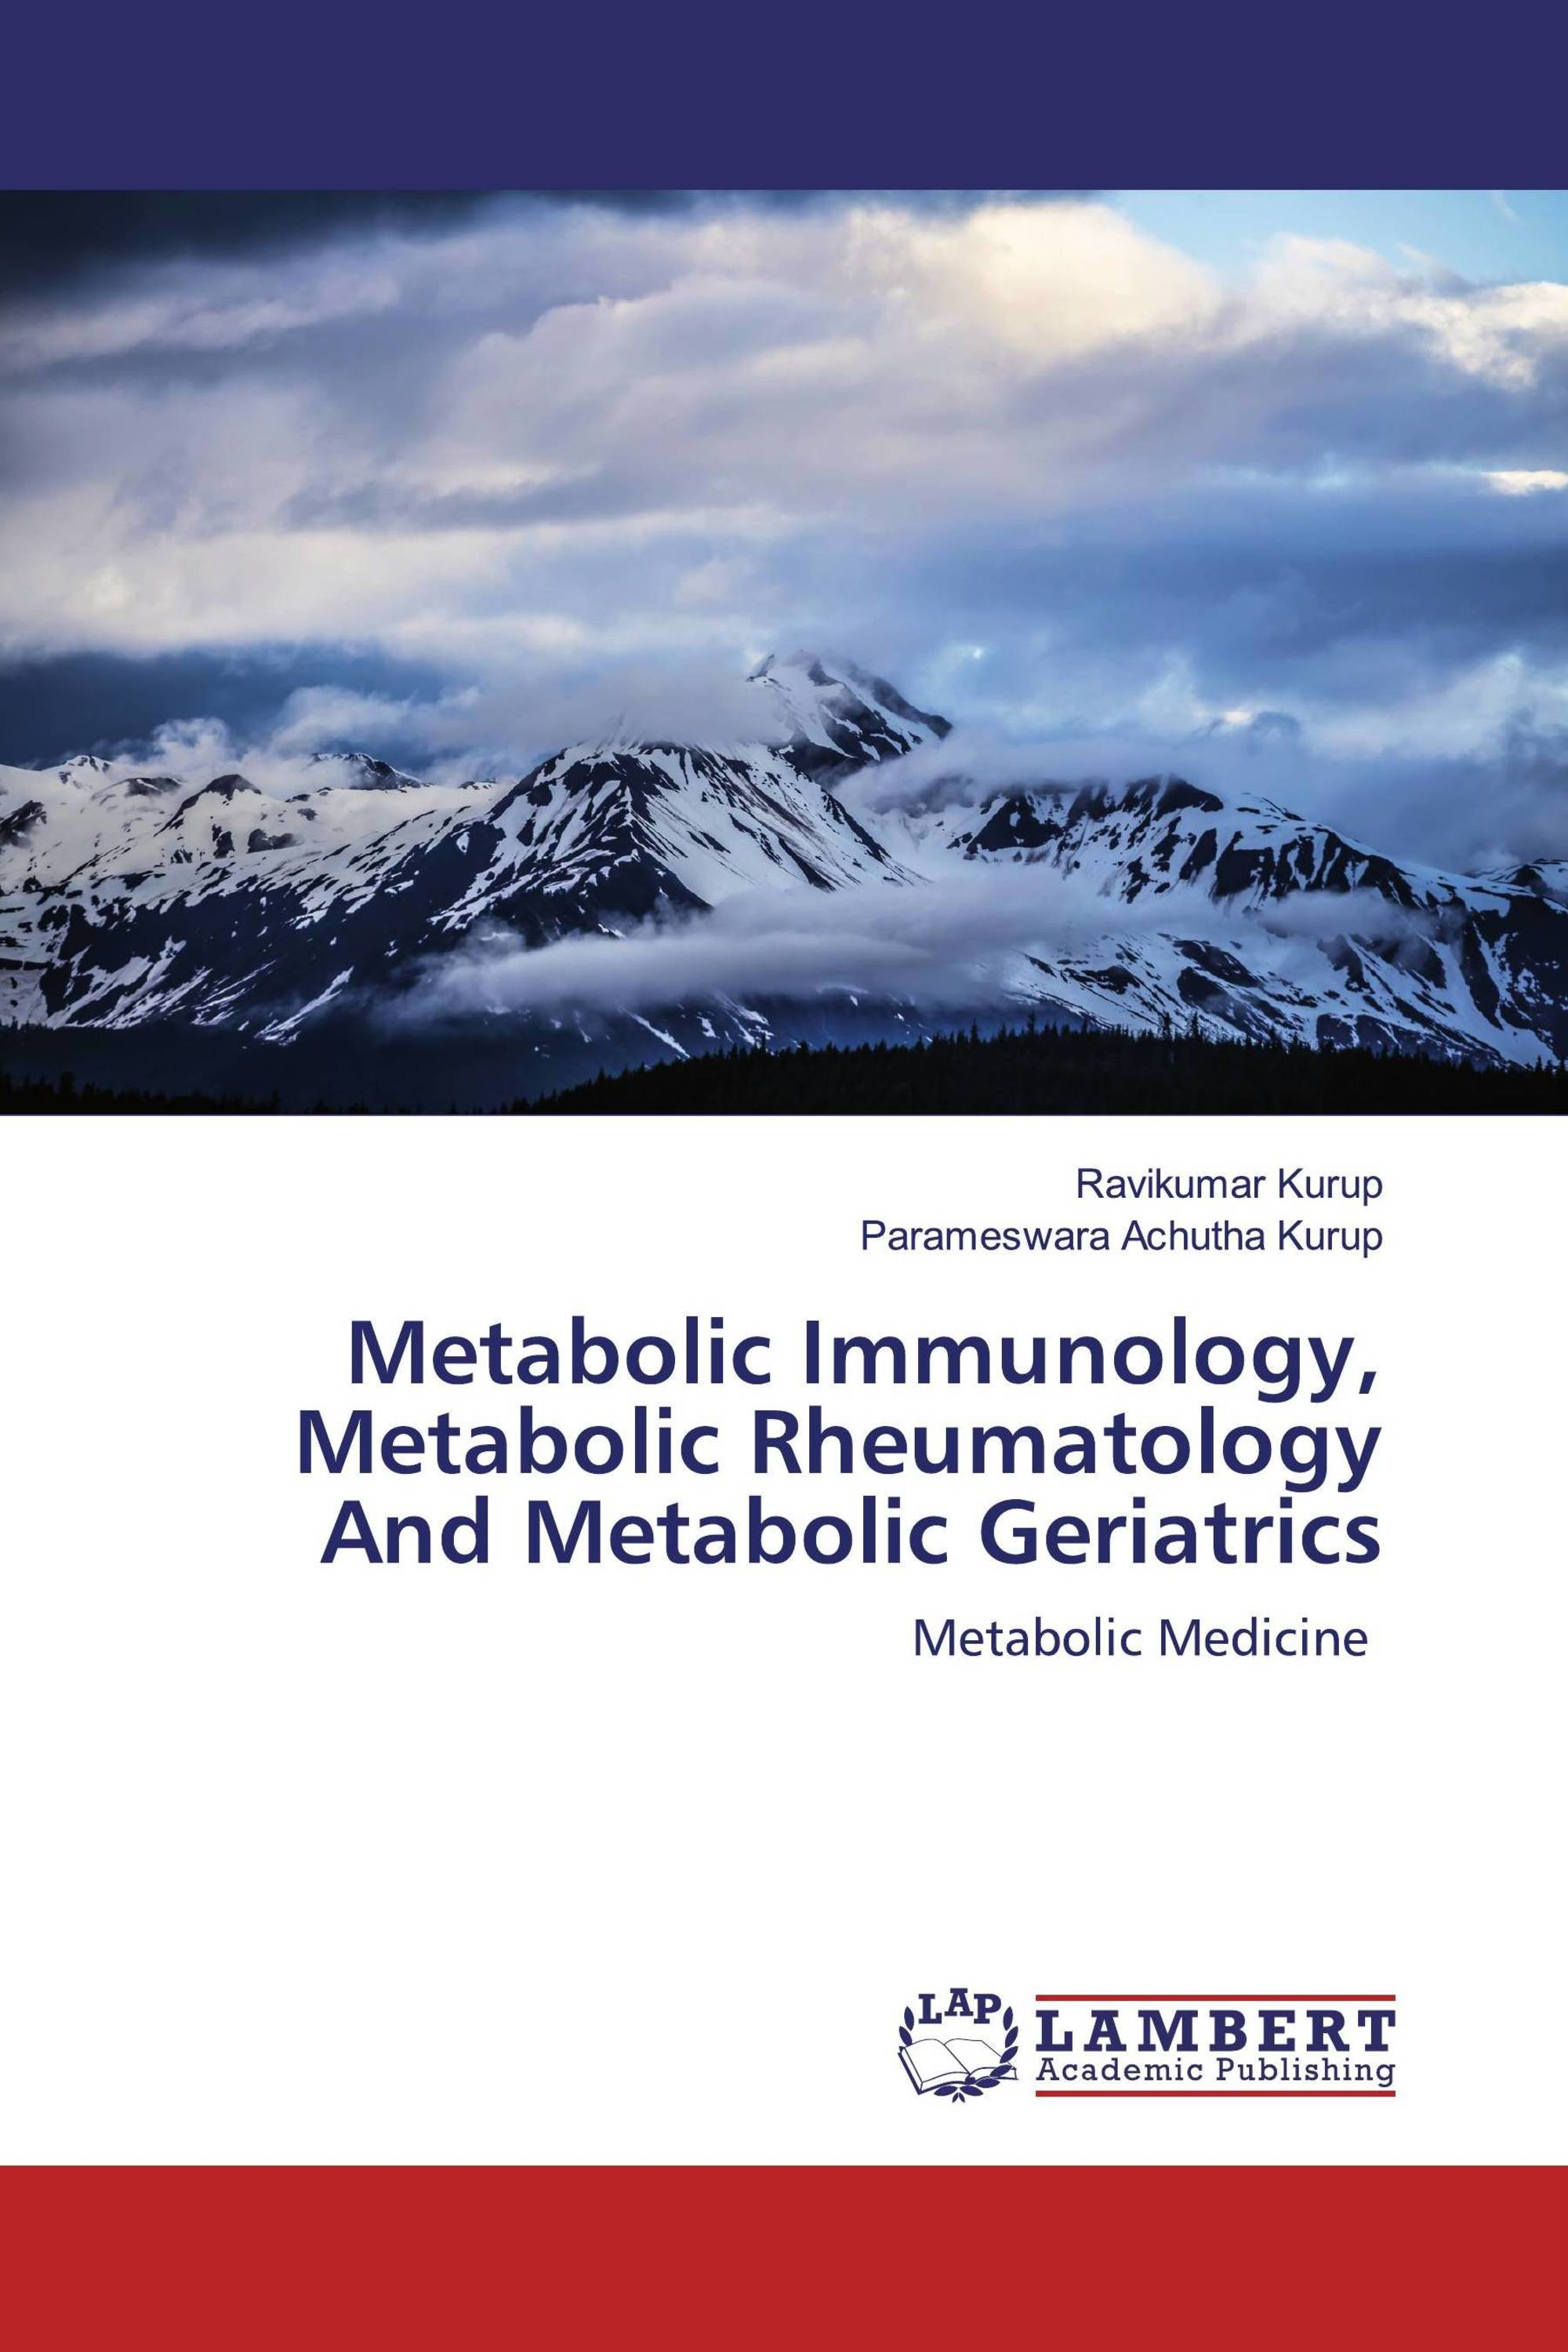 Metabolic Immunology, Metabolic Rheumatology And Metabolic Geriatrics